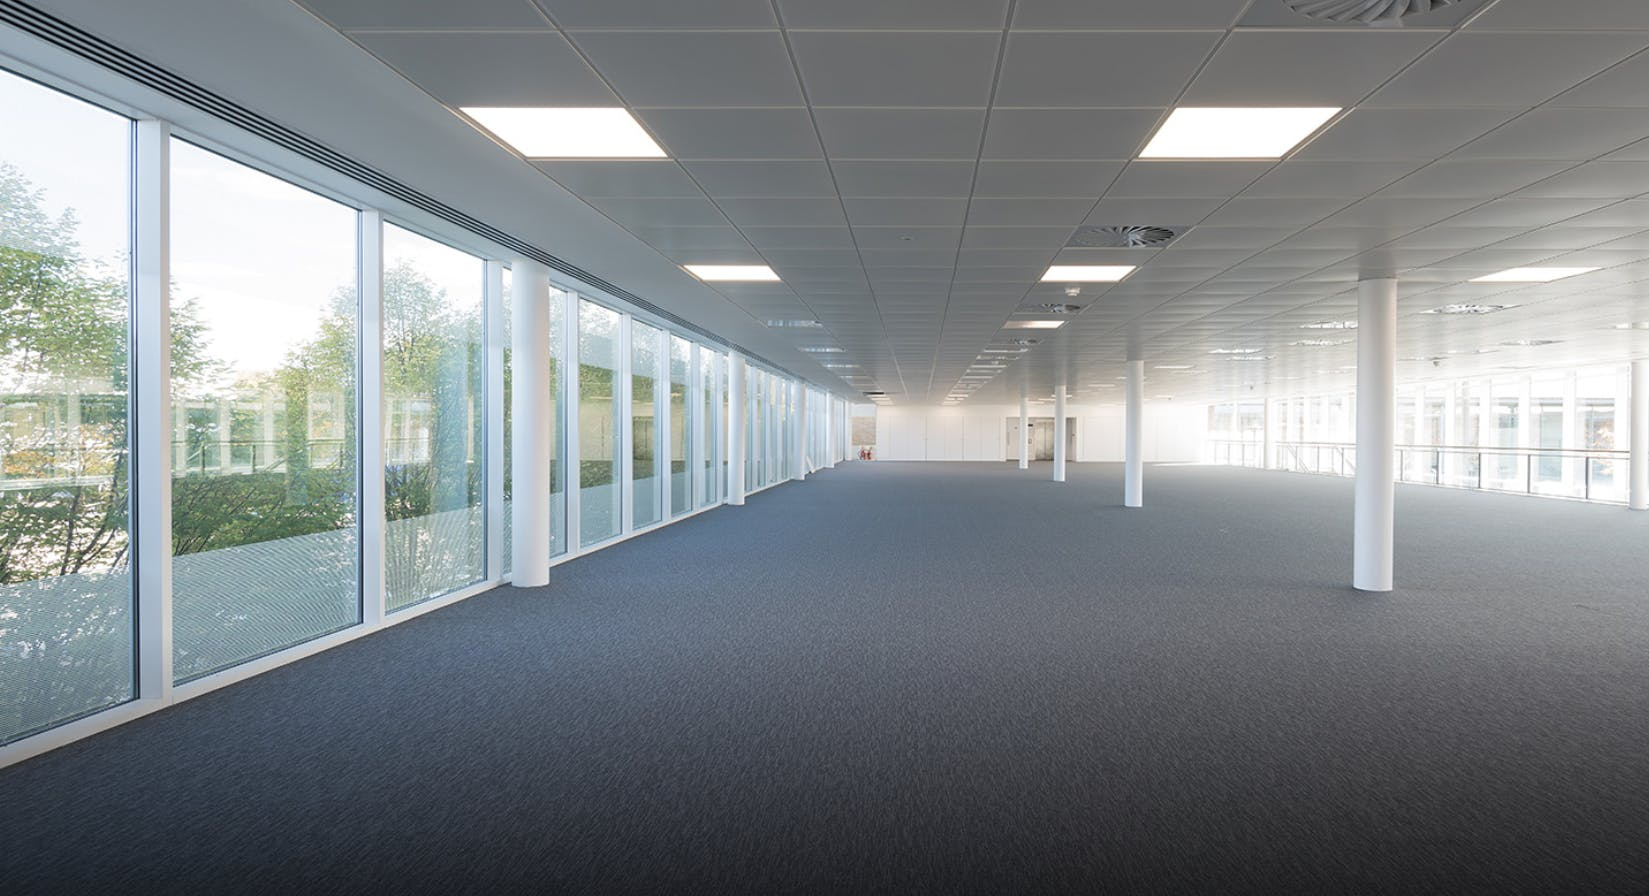 260 Winnersh Triangle, Wharfedale Road, Reading, Offices To Let - 260  4.PNG